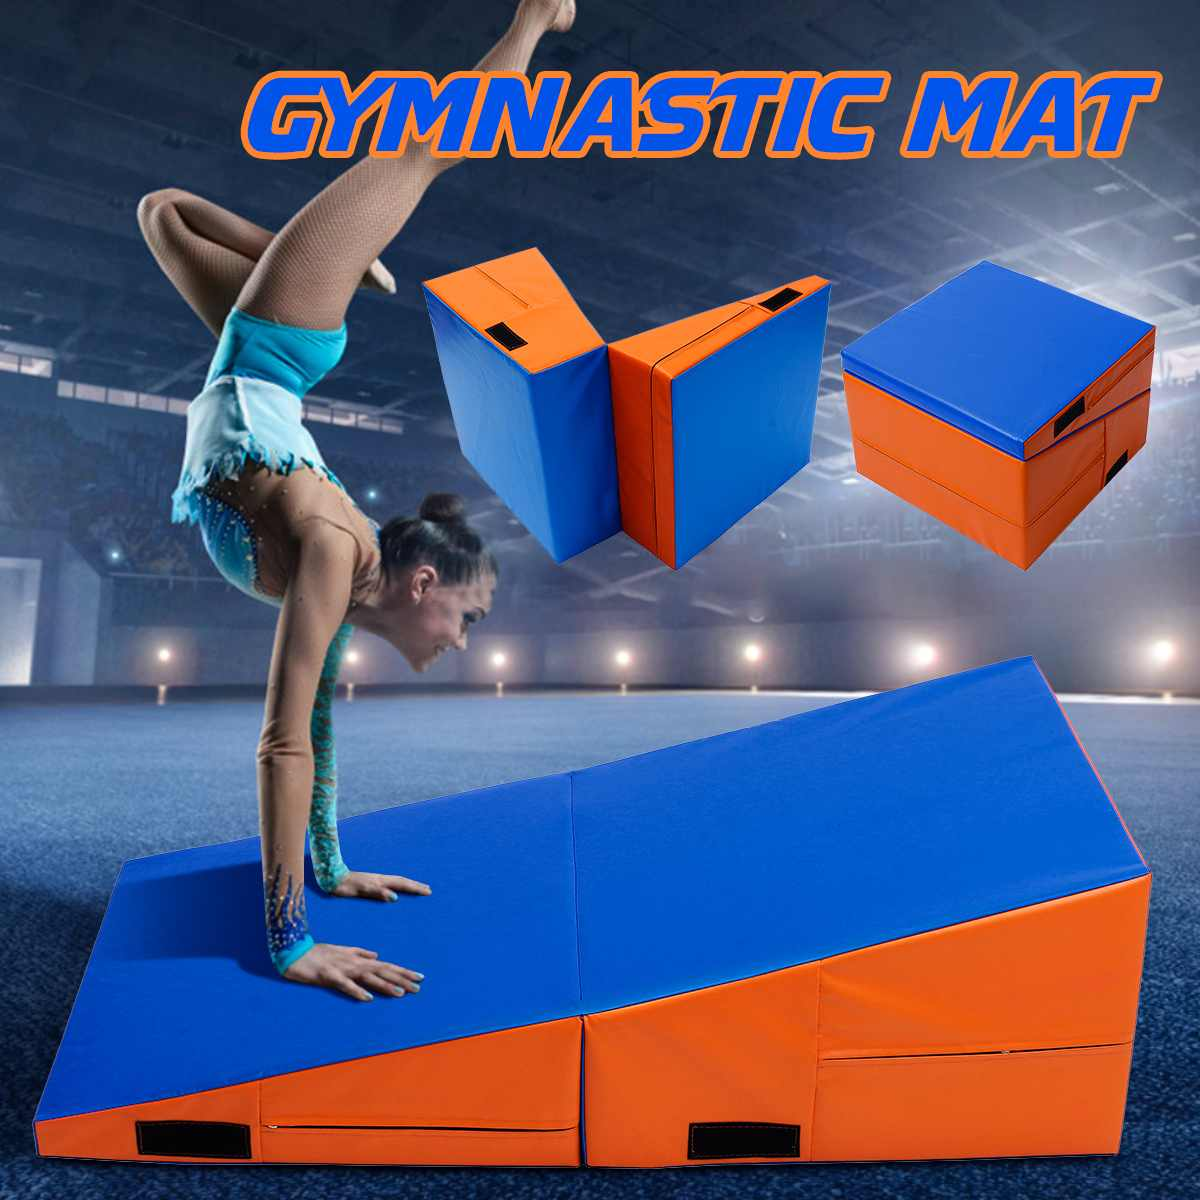 Foldable Incline Gymnastics Mat PU Foam Filling Skill Tumbling Gymnastics Mat Ramp Safe Exercise Fitness Equipment 3 Sizes